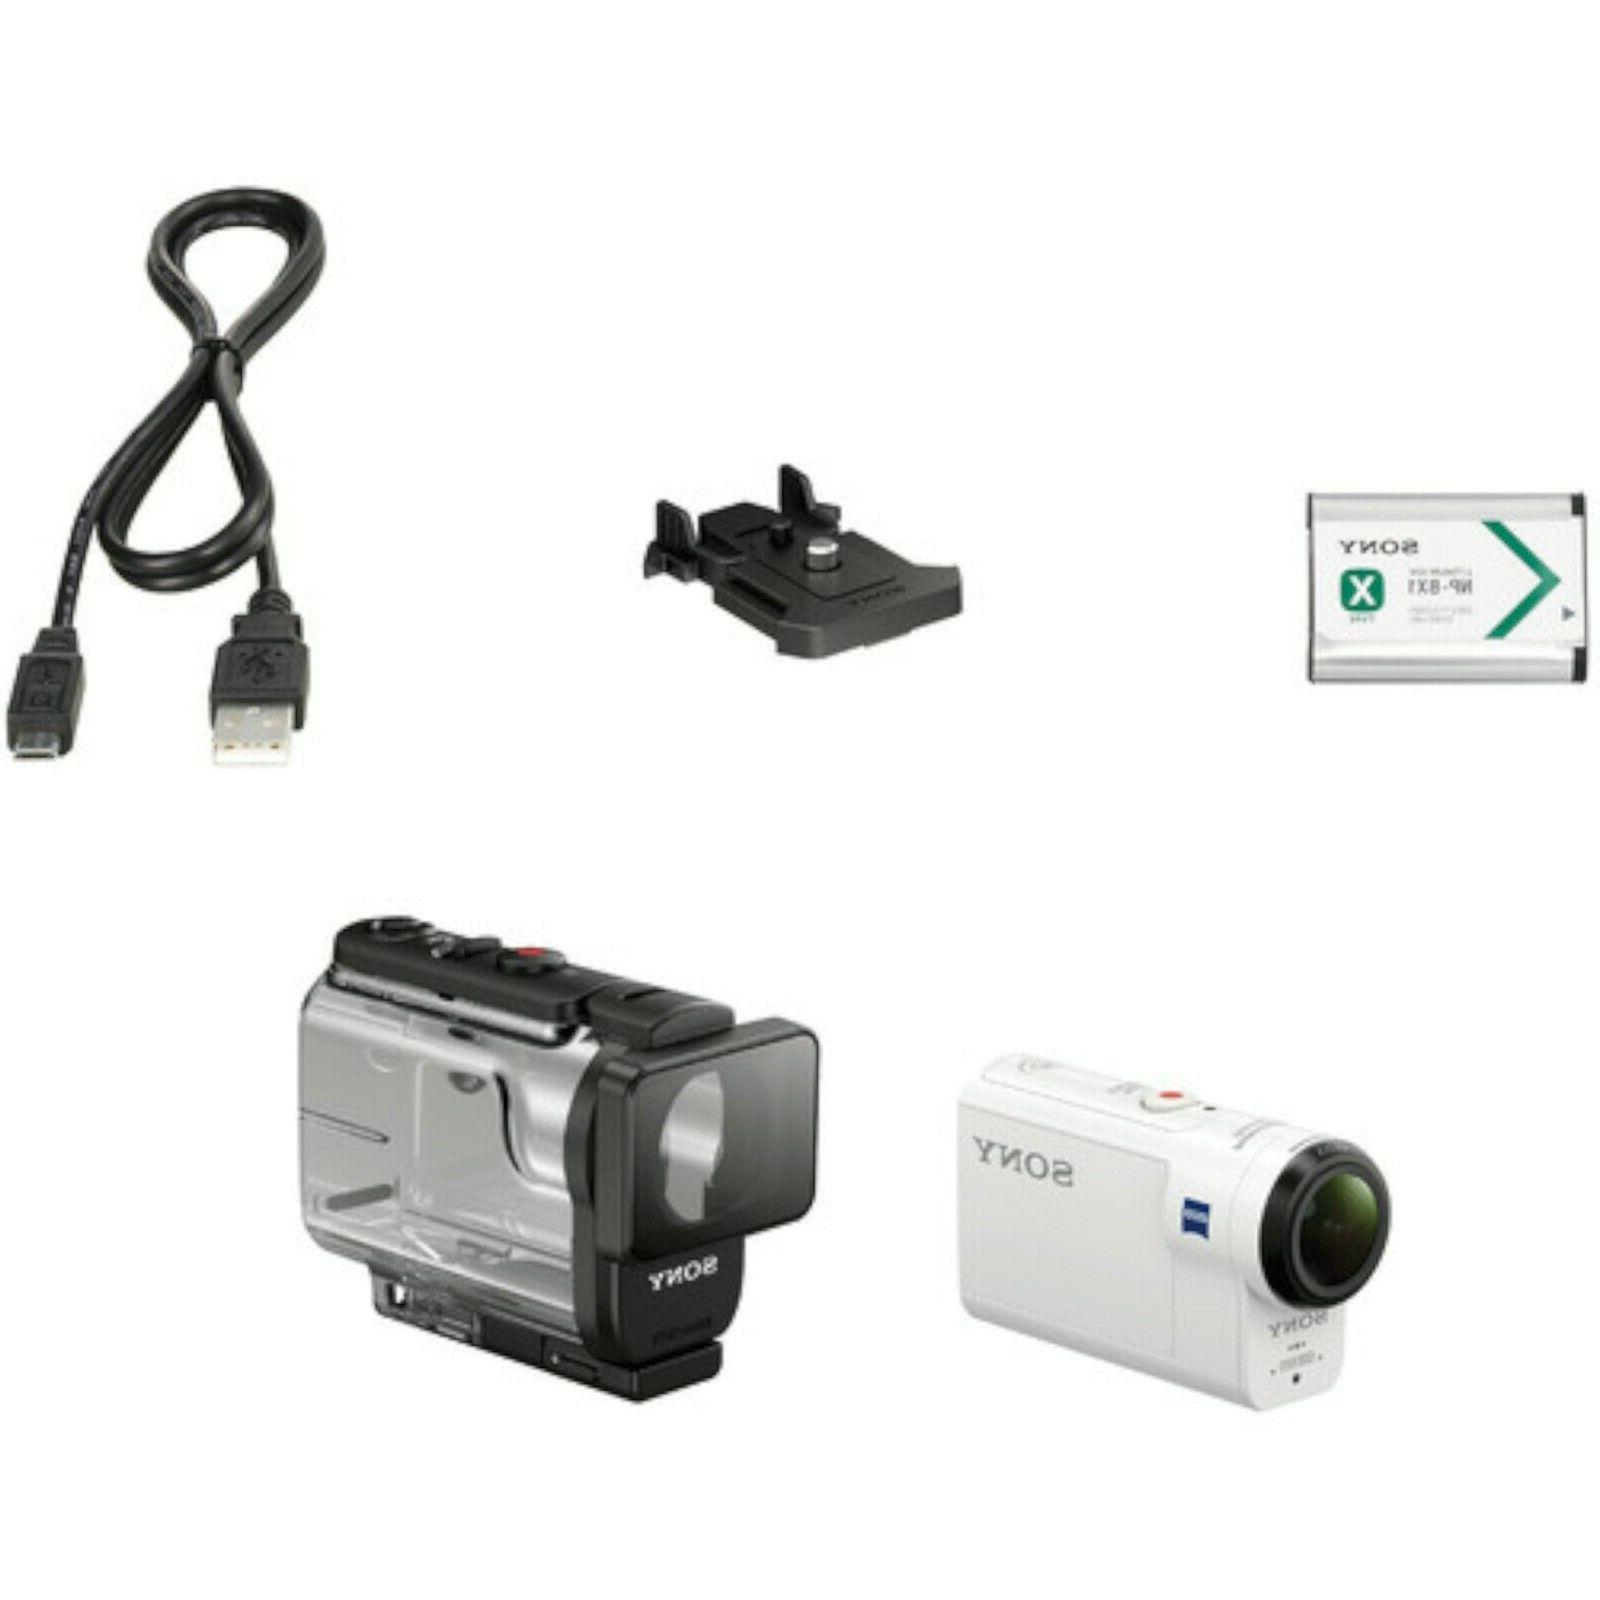 NEW Sony Cam HDR-AS300 Video Camcorder